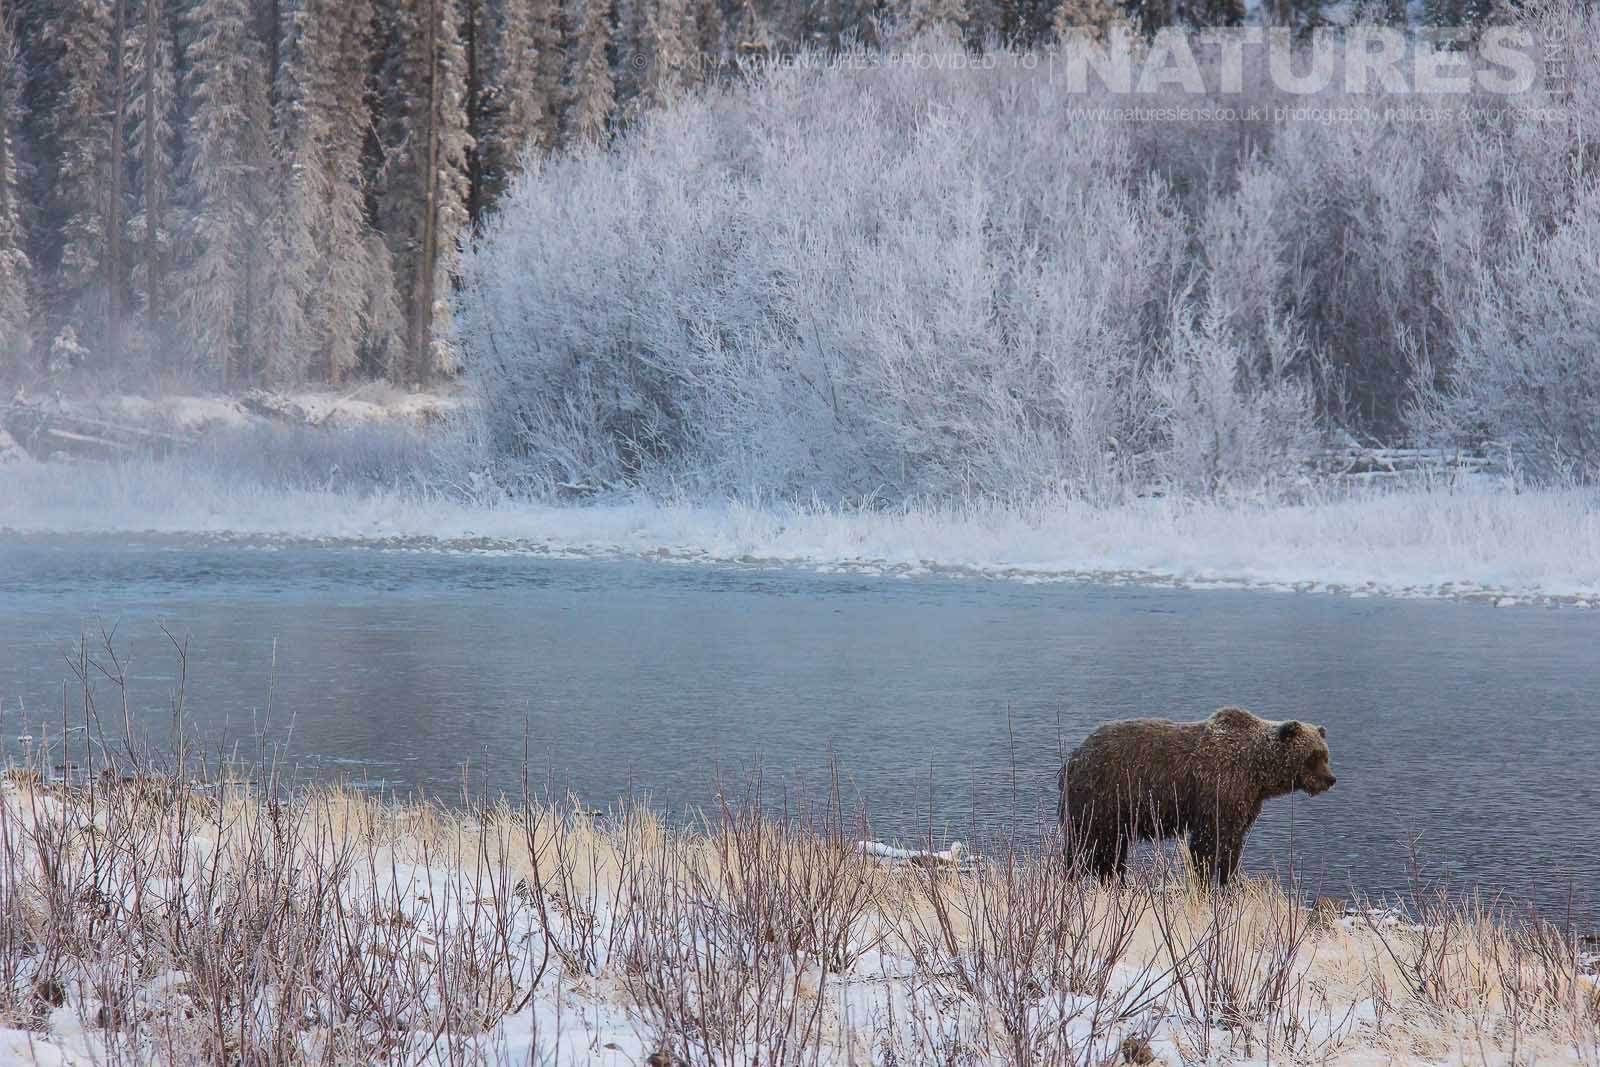 One Of The Grizzly Bears Of Bear Cave Mountain Walks Alongside Fishing Branch River Typical Of The Kind Of Image That May Be Captured On The Ice Bears Of The Yukon Photographic Holiday